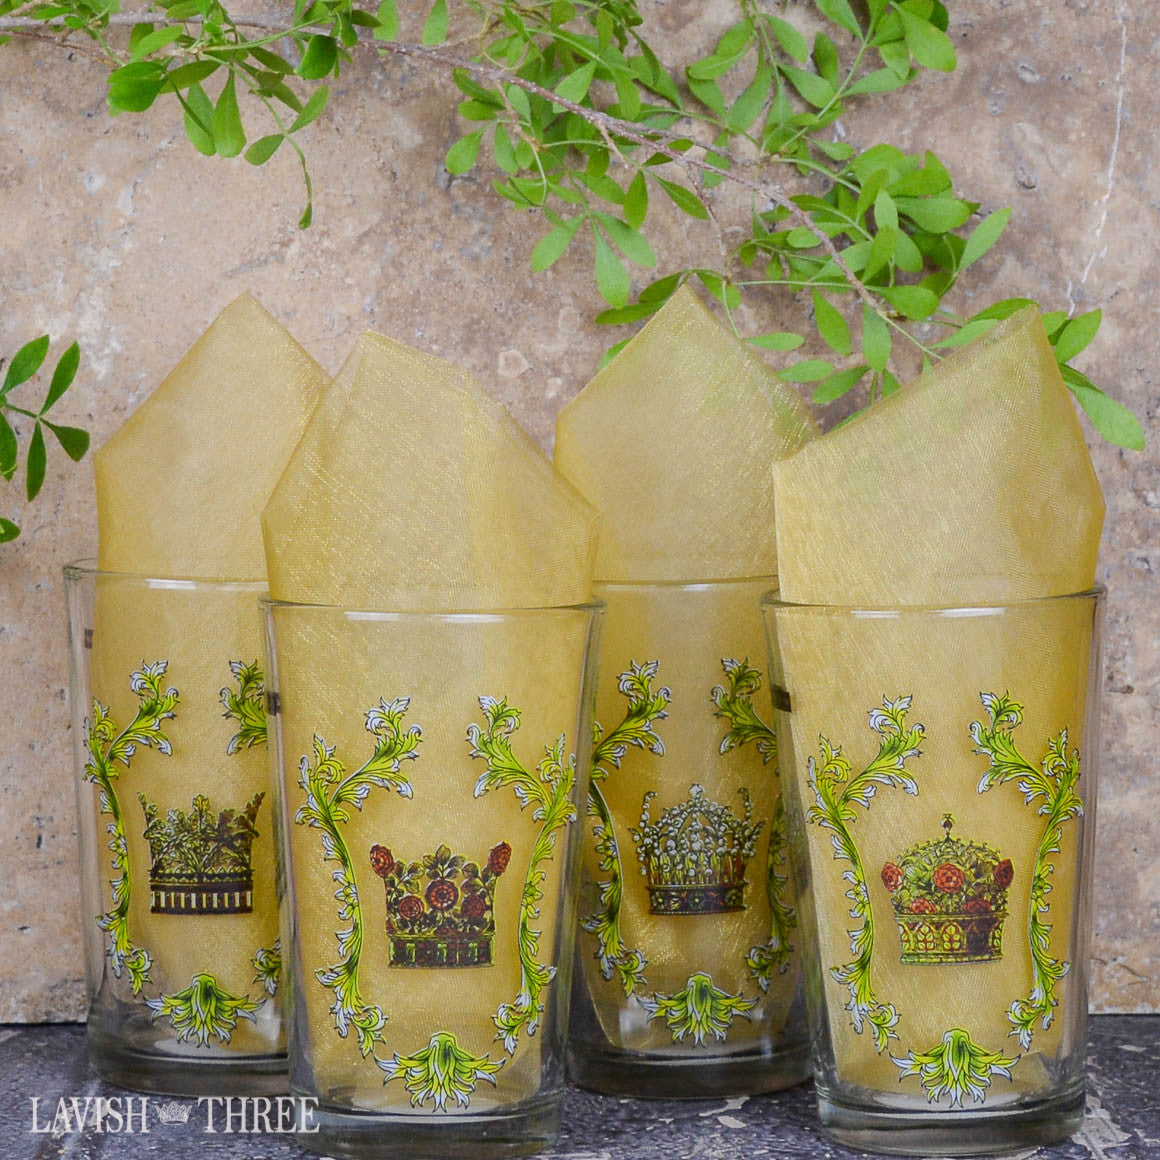 Royal crown mini-juice glasses with inspirational sayings lavish three 3